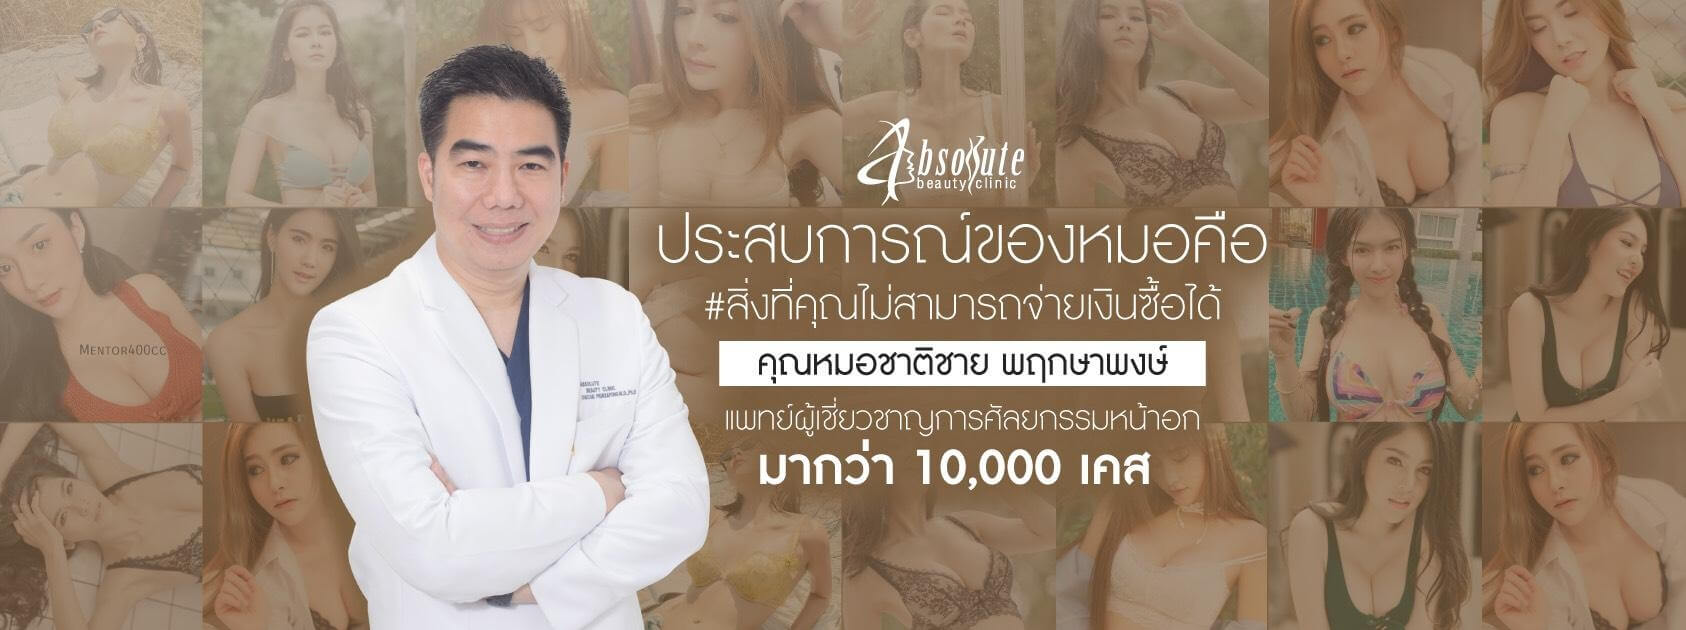 absolute beauty clinic